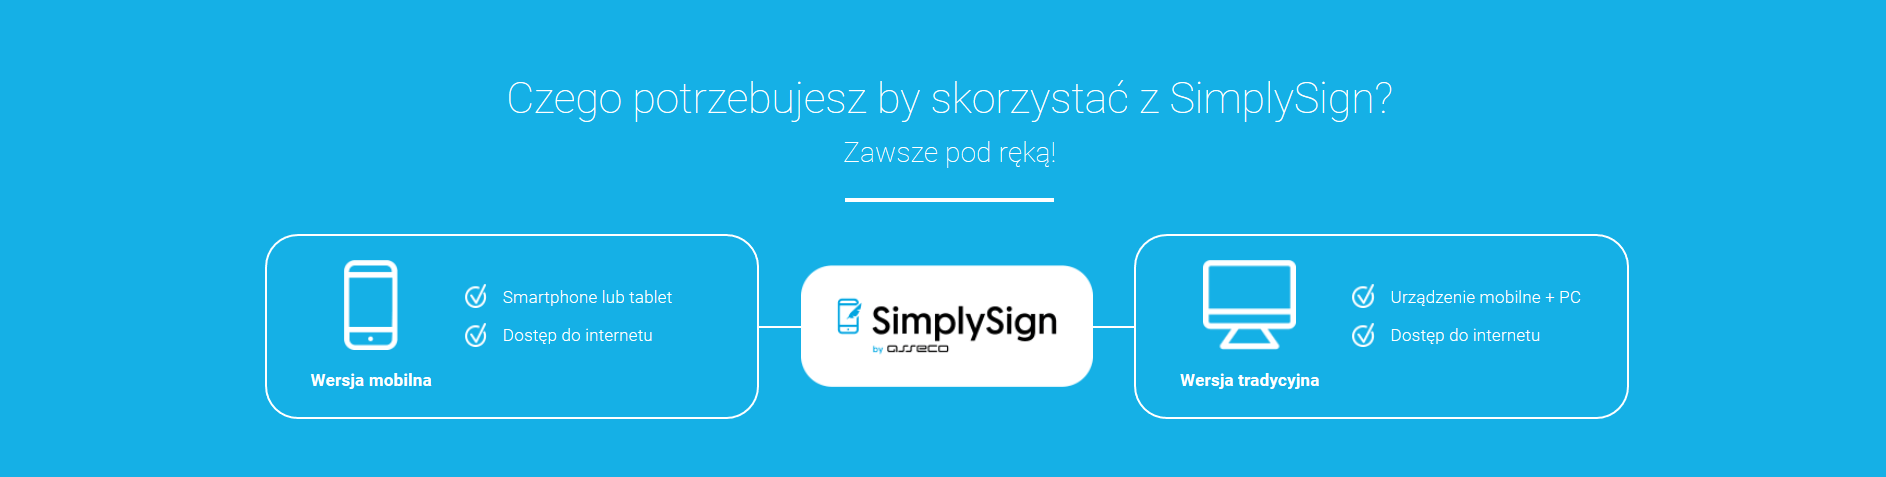 SimplySign co potrzebne